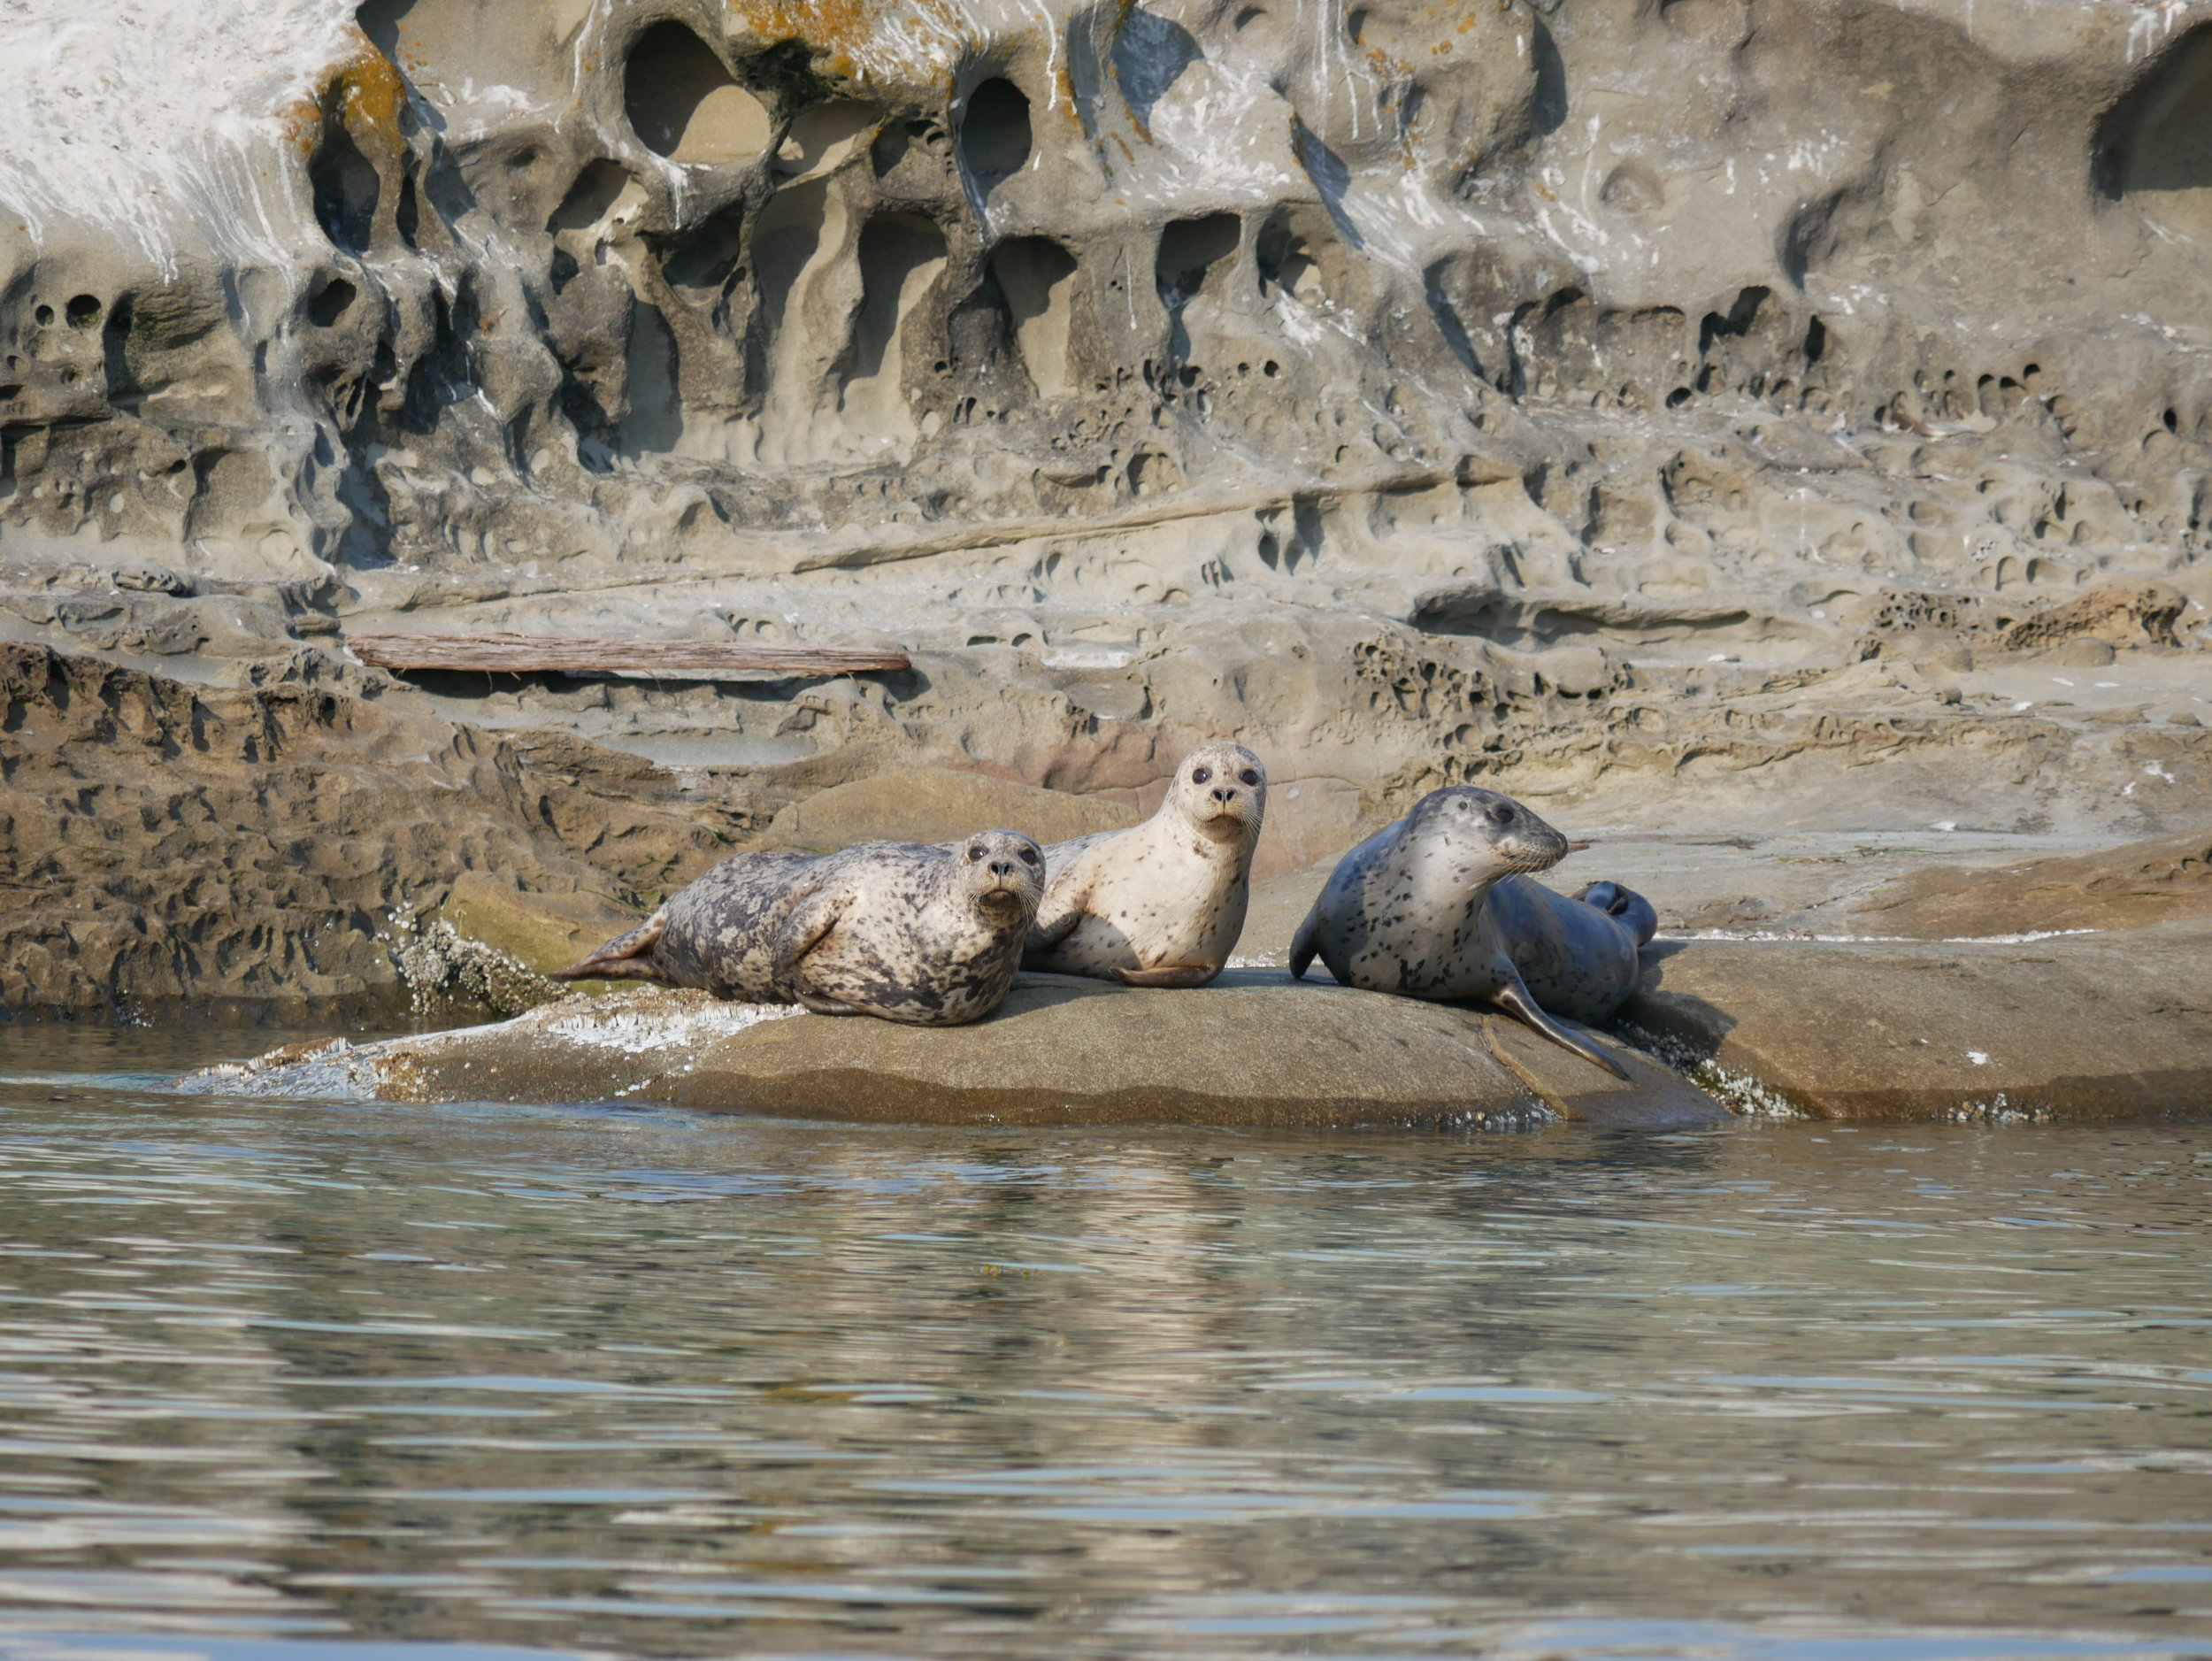 Cute and furry harbour seals. Photo by Alanna Vivani